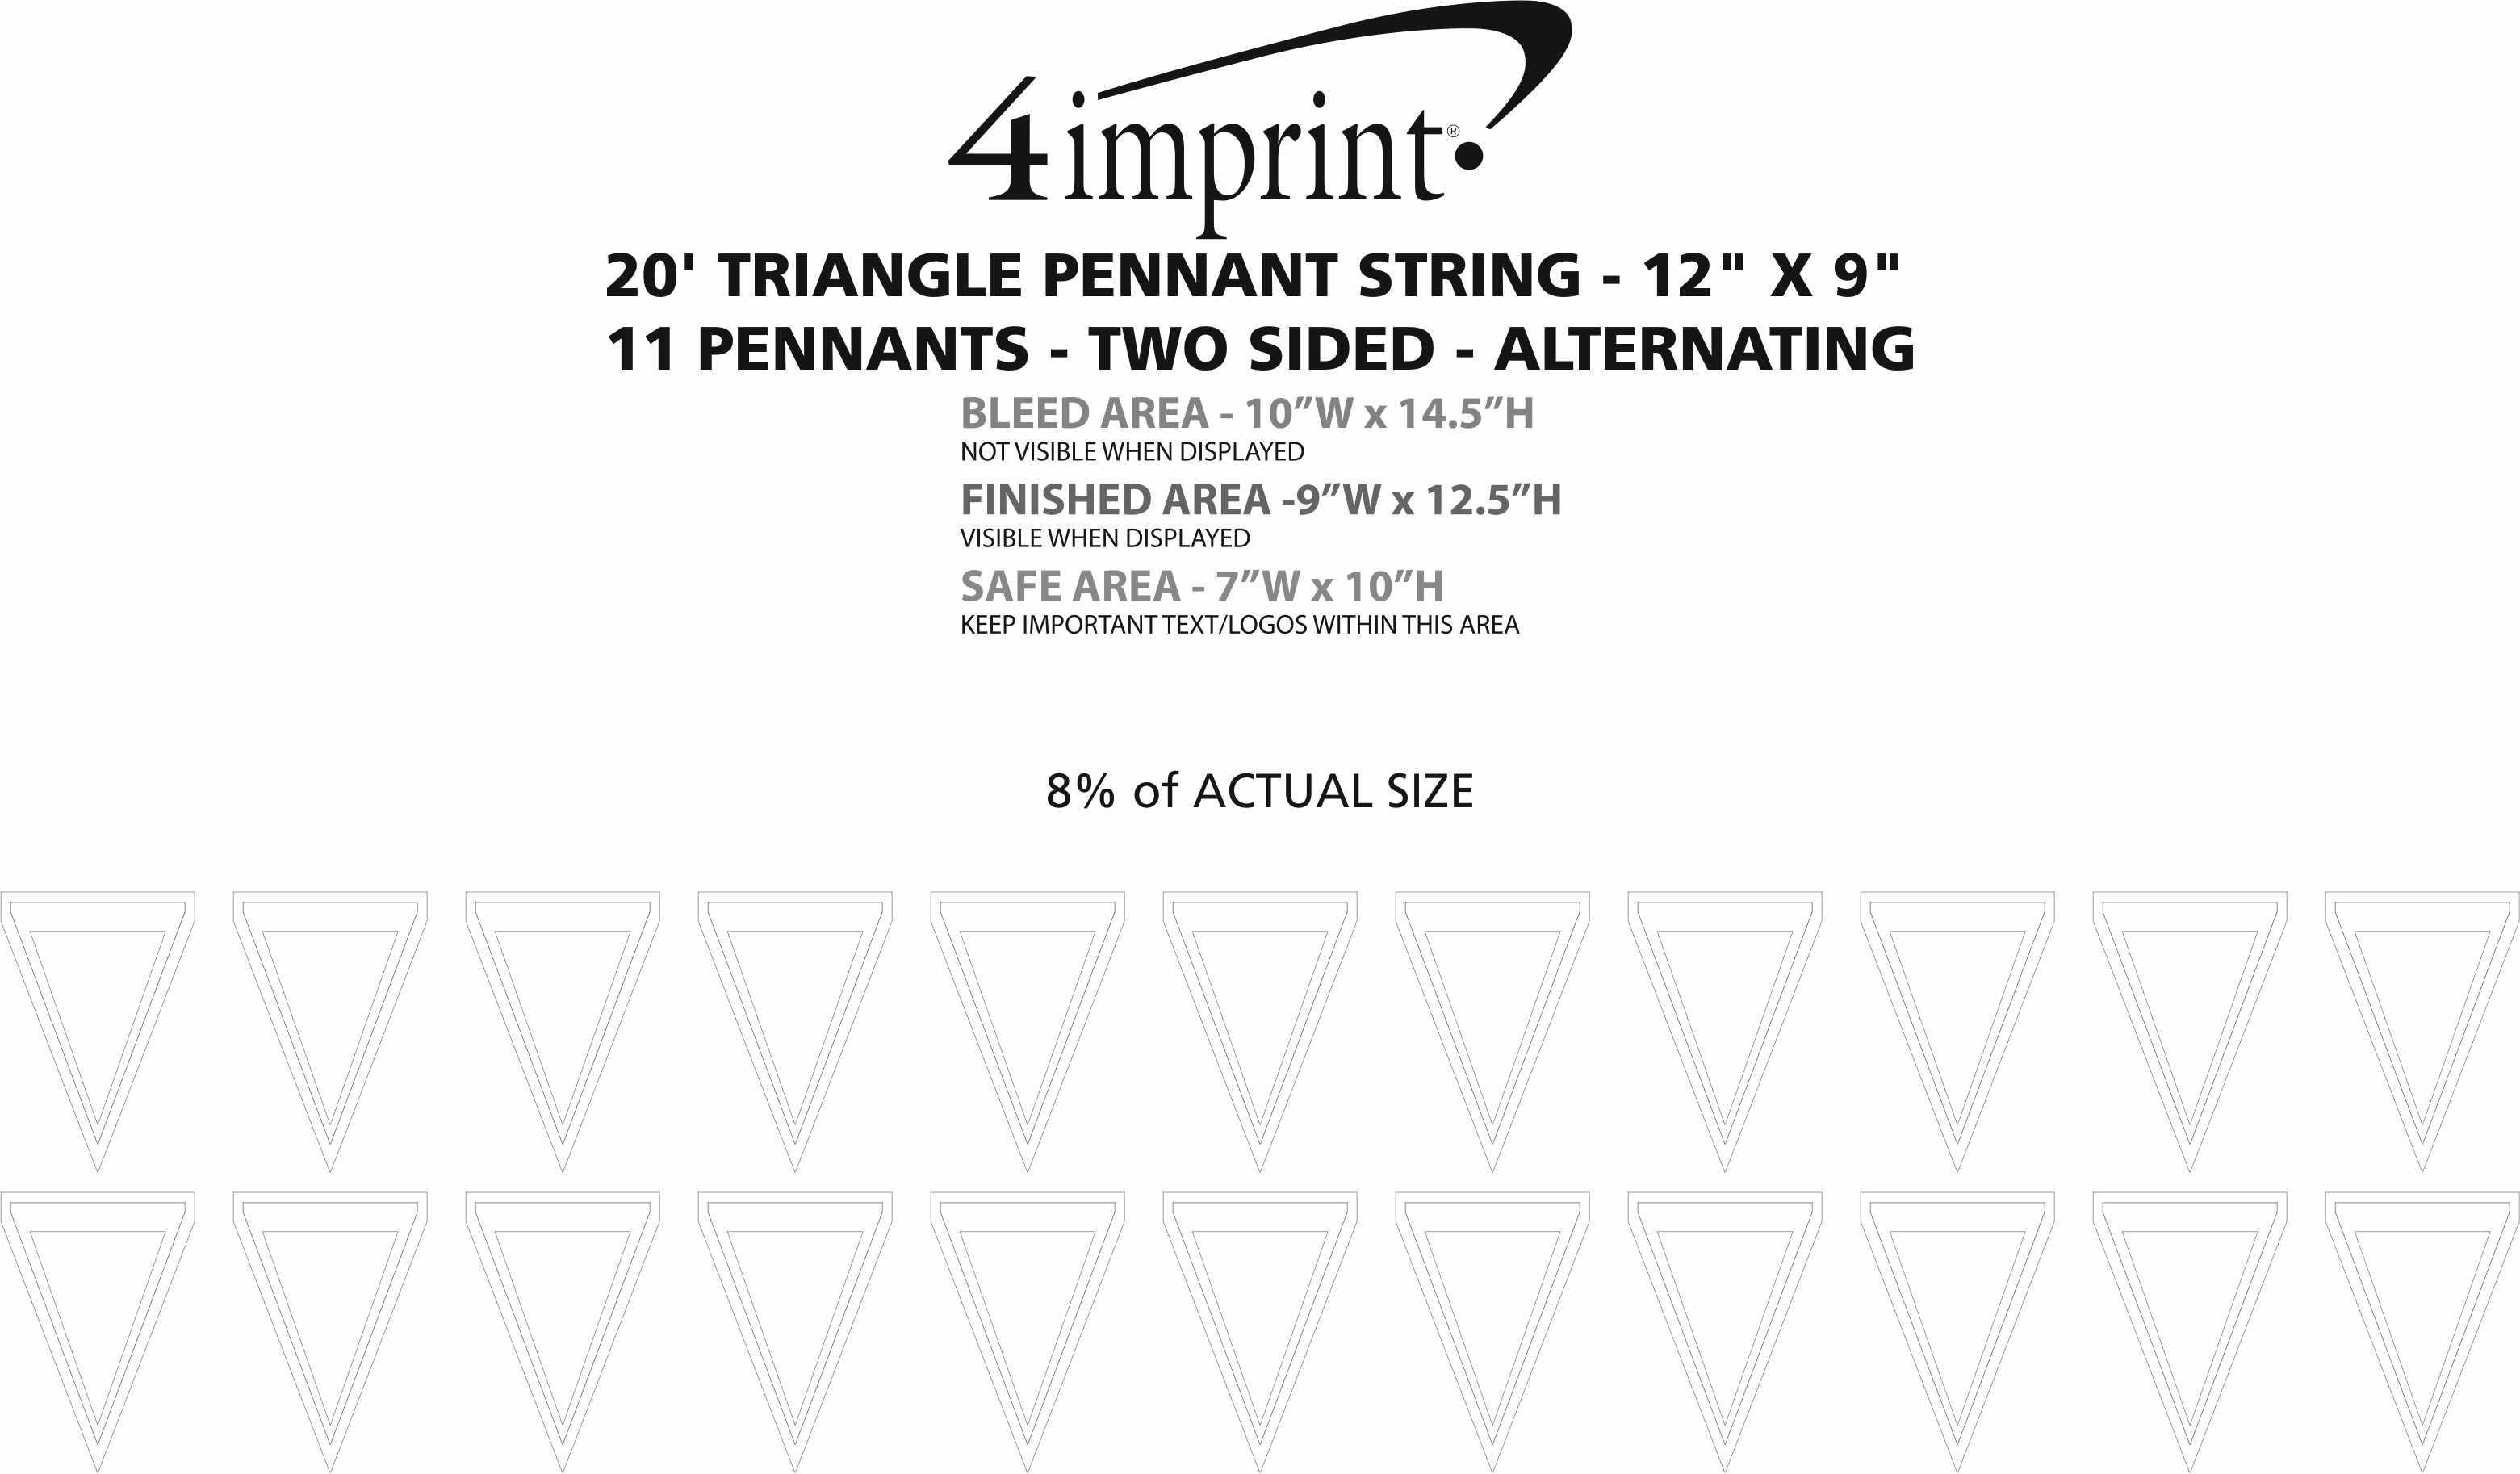 """Imprint Area of 20' Triangle Pennant String - 12"""" x 9"""" - 11 Pennants - Two Sided - Alternating"""